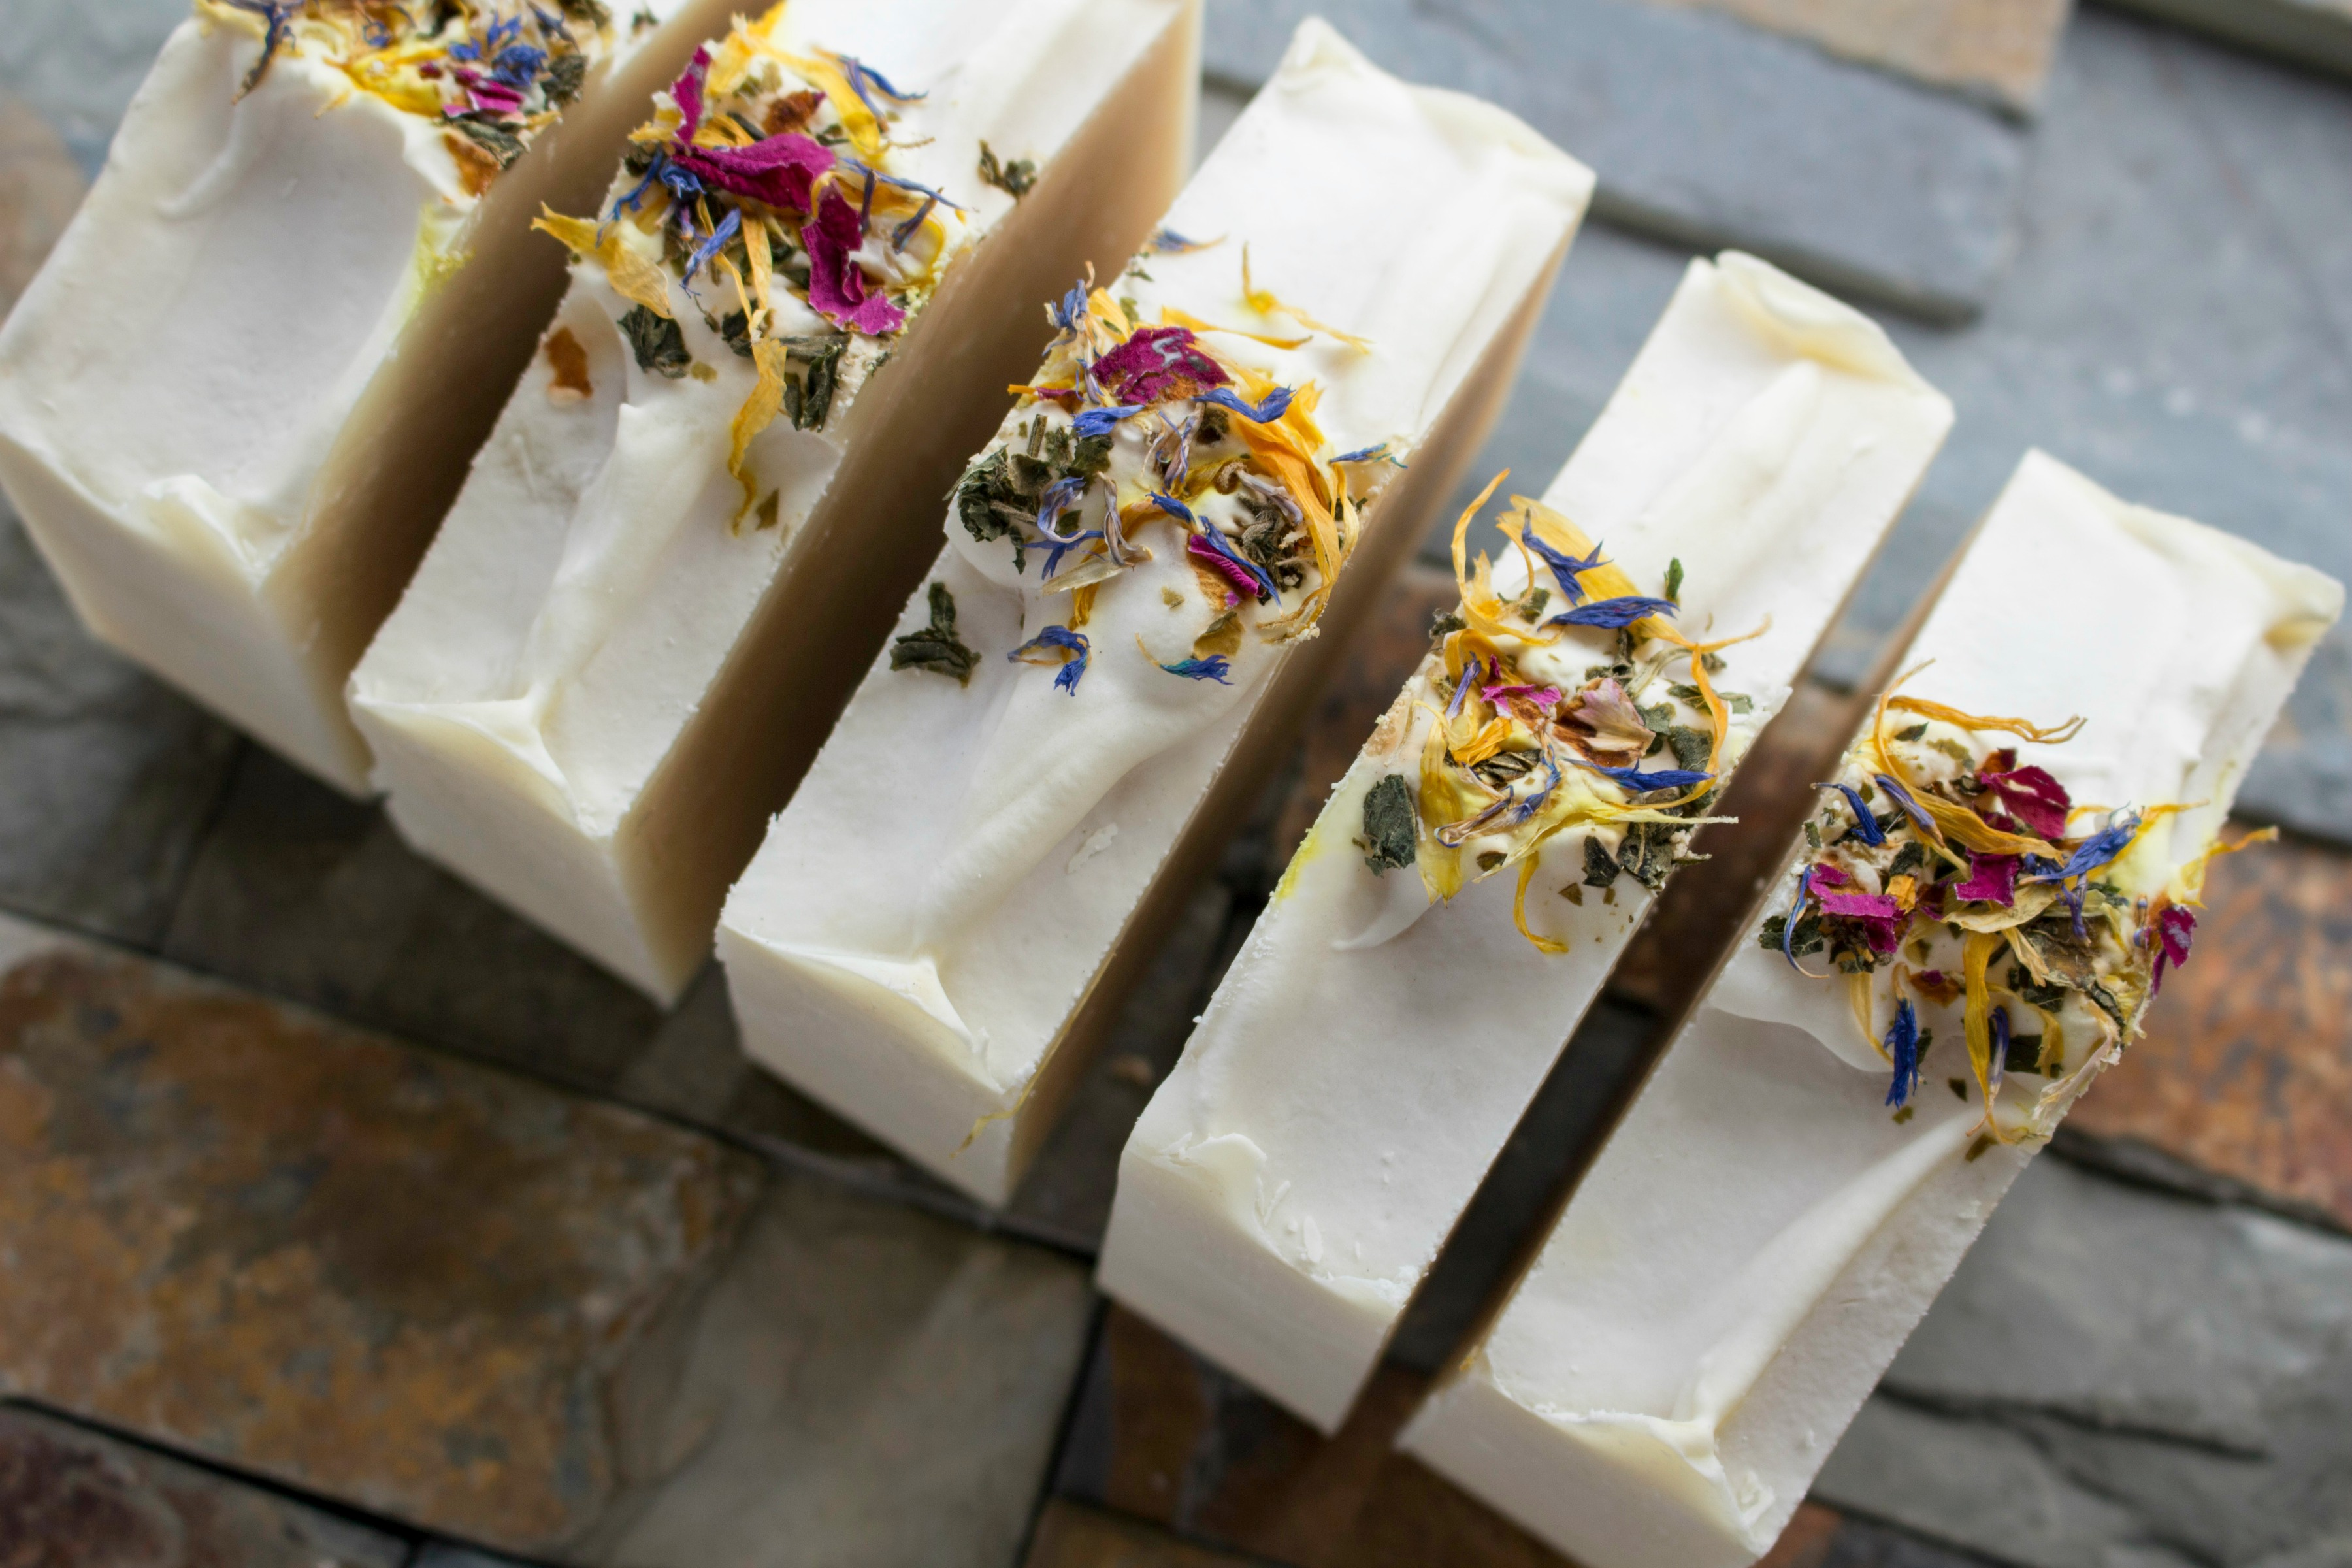 White bars of soap sprinkled with colorful flower petals on a cool-colored natural stones.